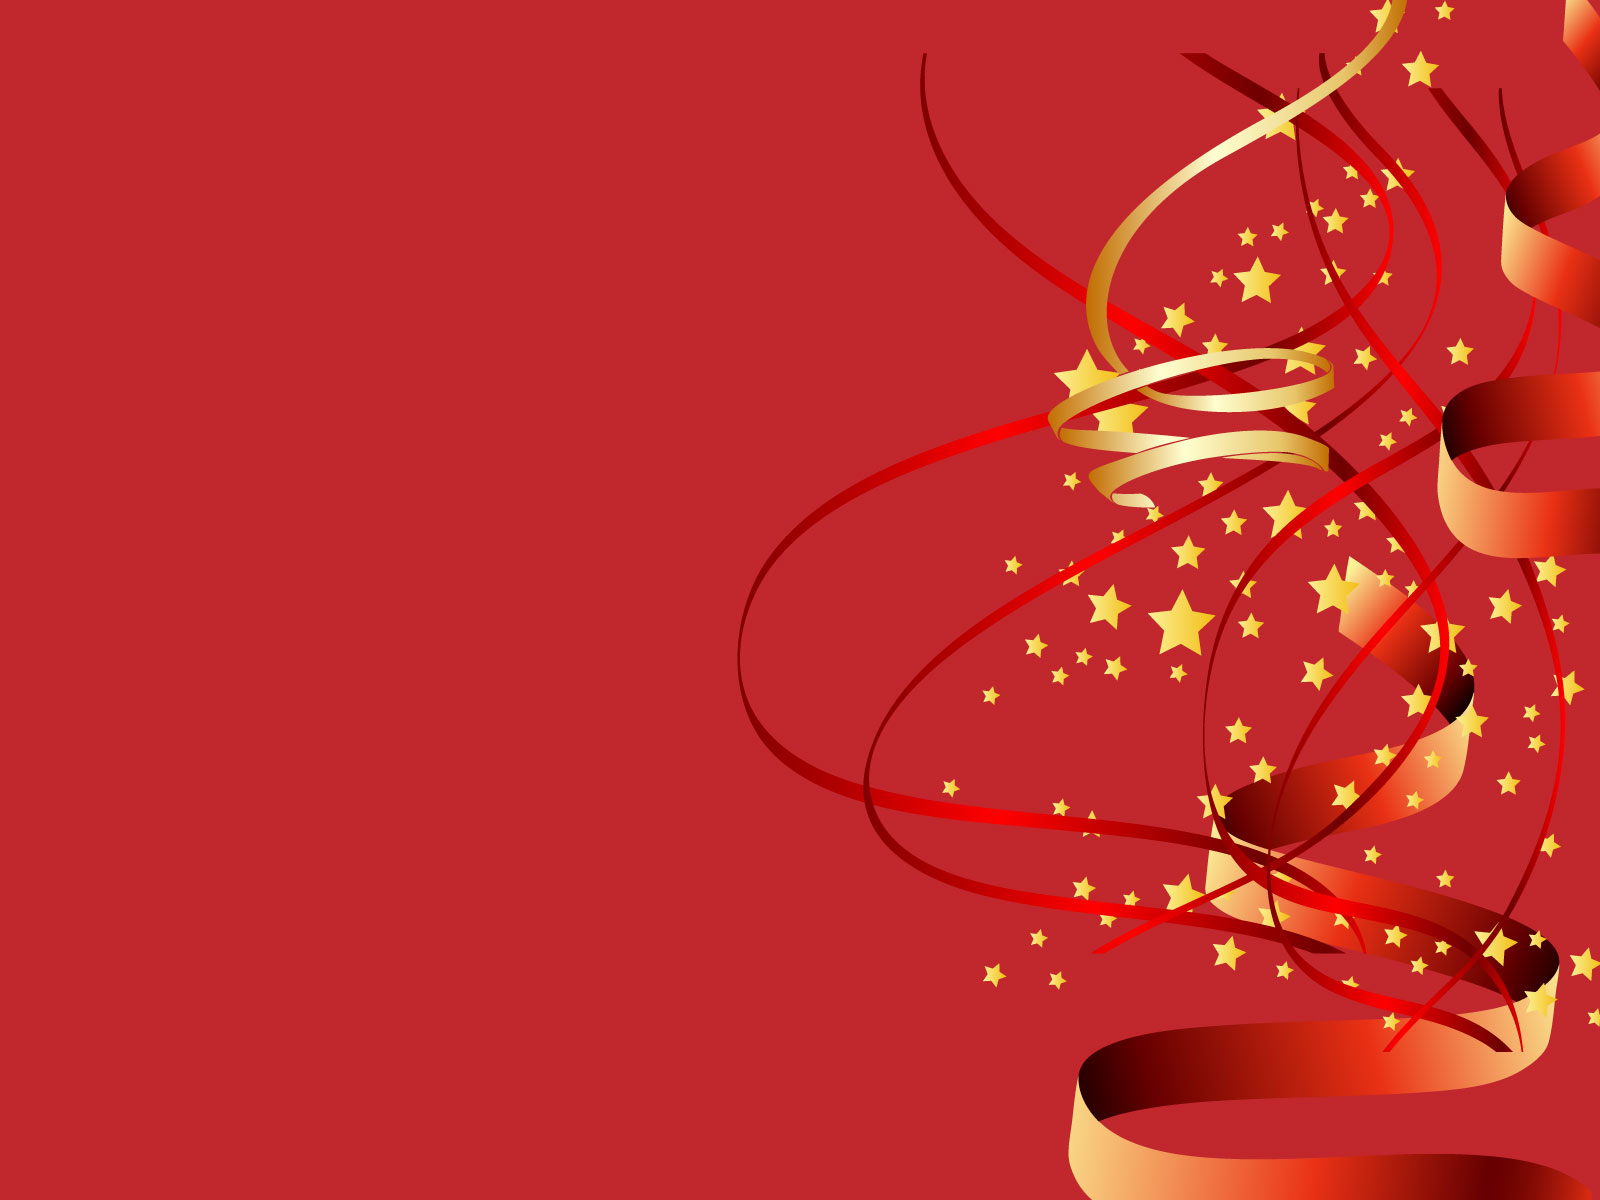 new year wallpaper free wallpapers